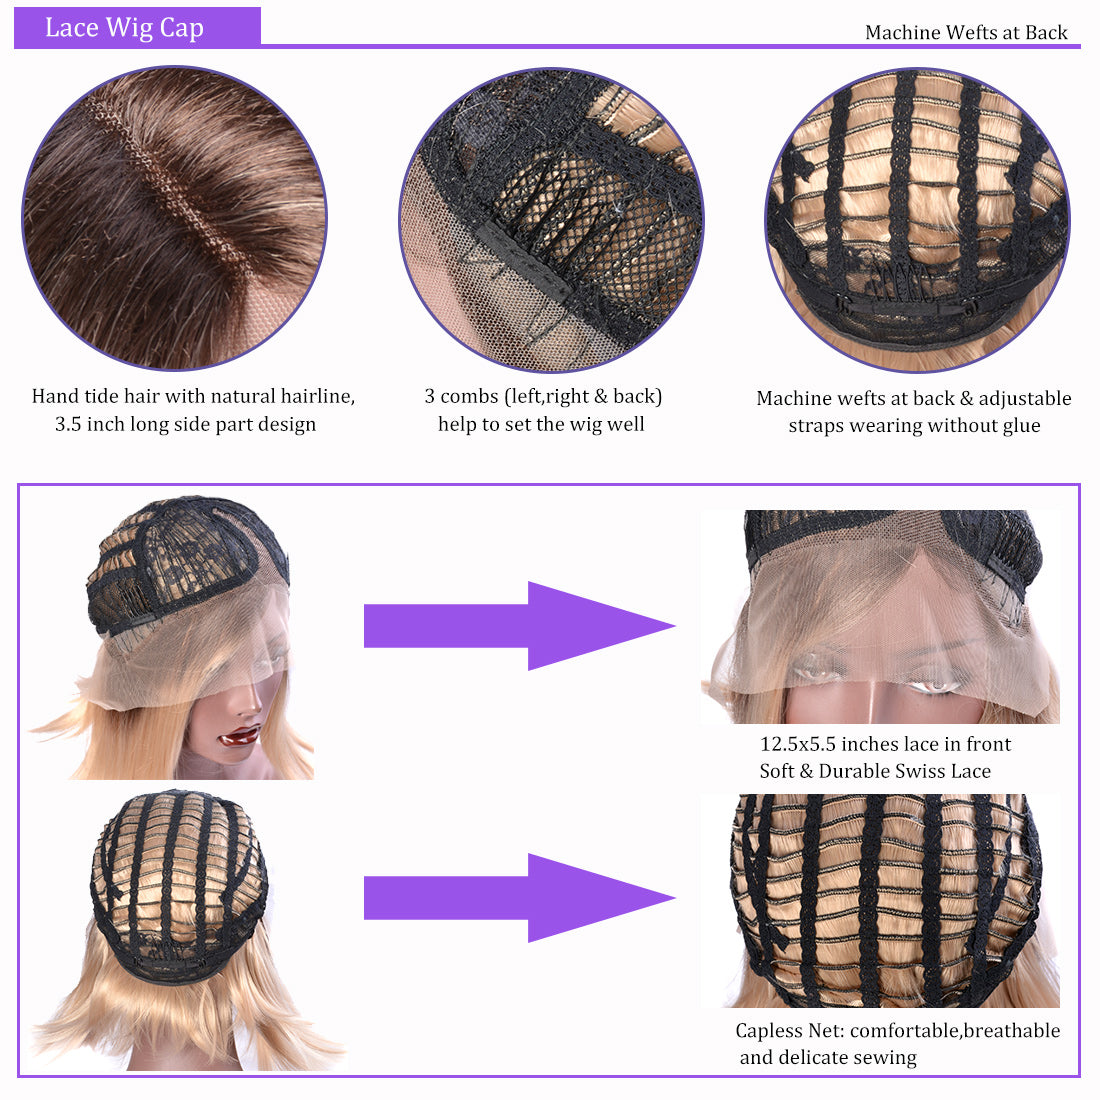 synthetic lace wigs #2 /#4 ombre straight bob wigs cap details show in description